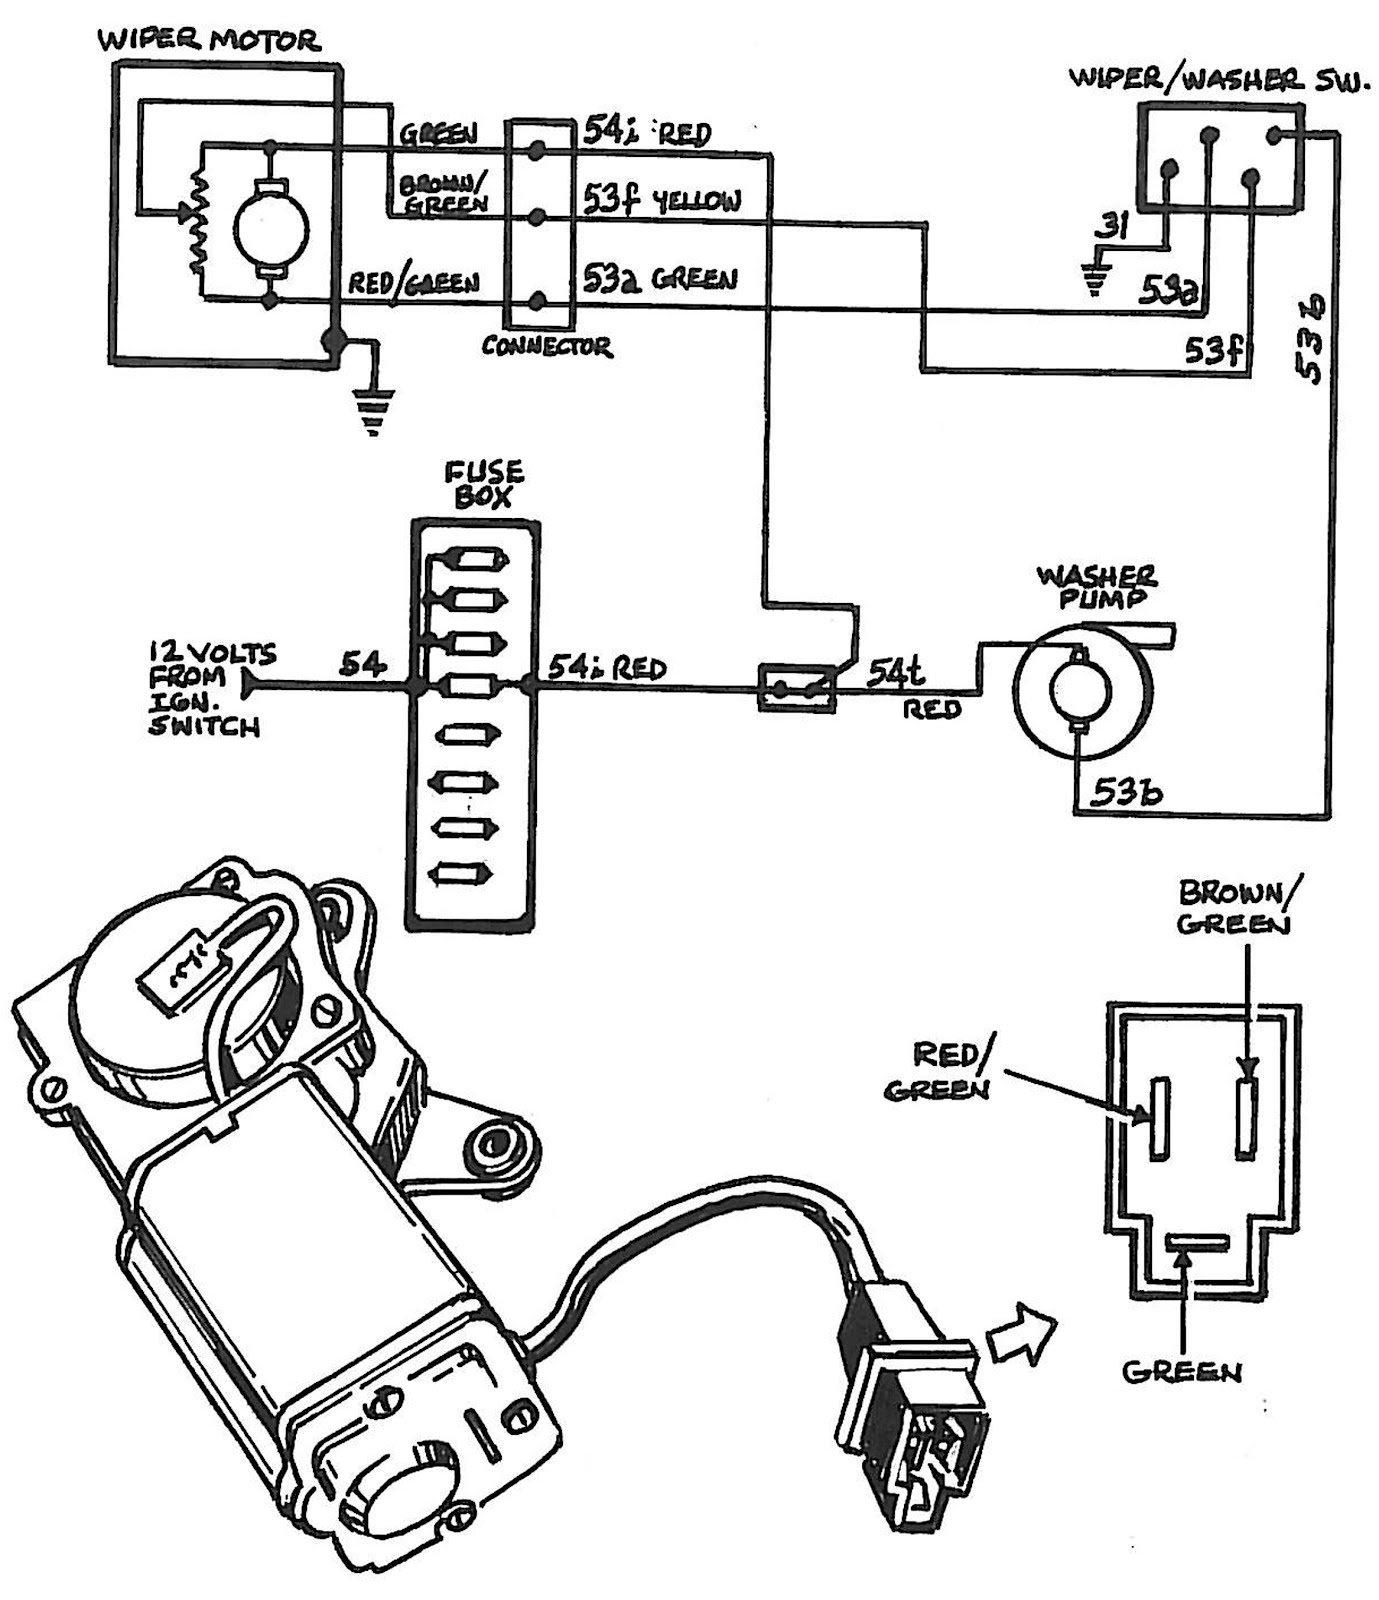 Chevy Blazer Wiring Diagram Moreover 1997 Tahoe 2 Starting Know 81 Fuse Box Chevrolet Wiper Get Free Image About